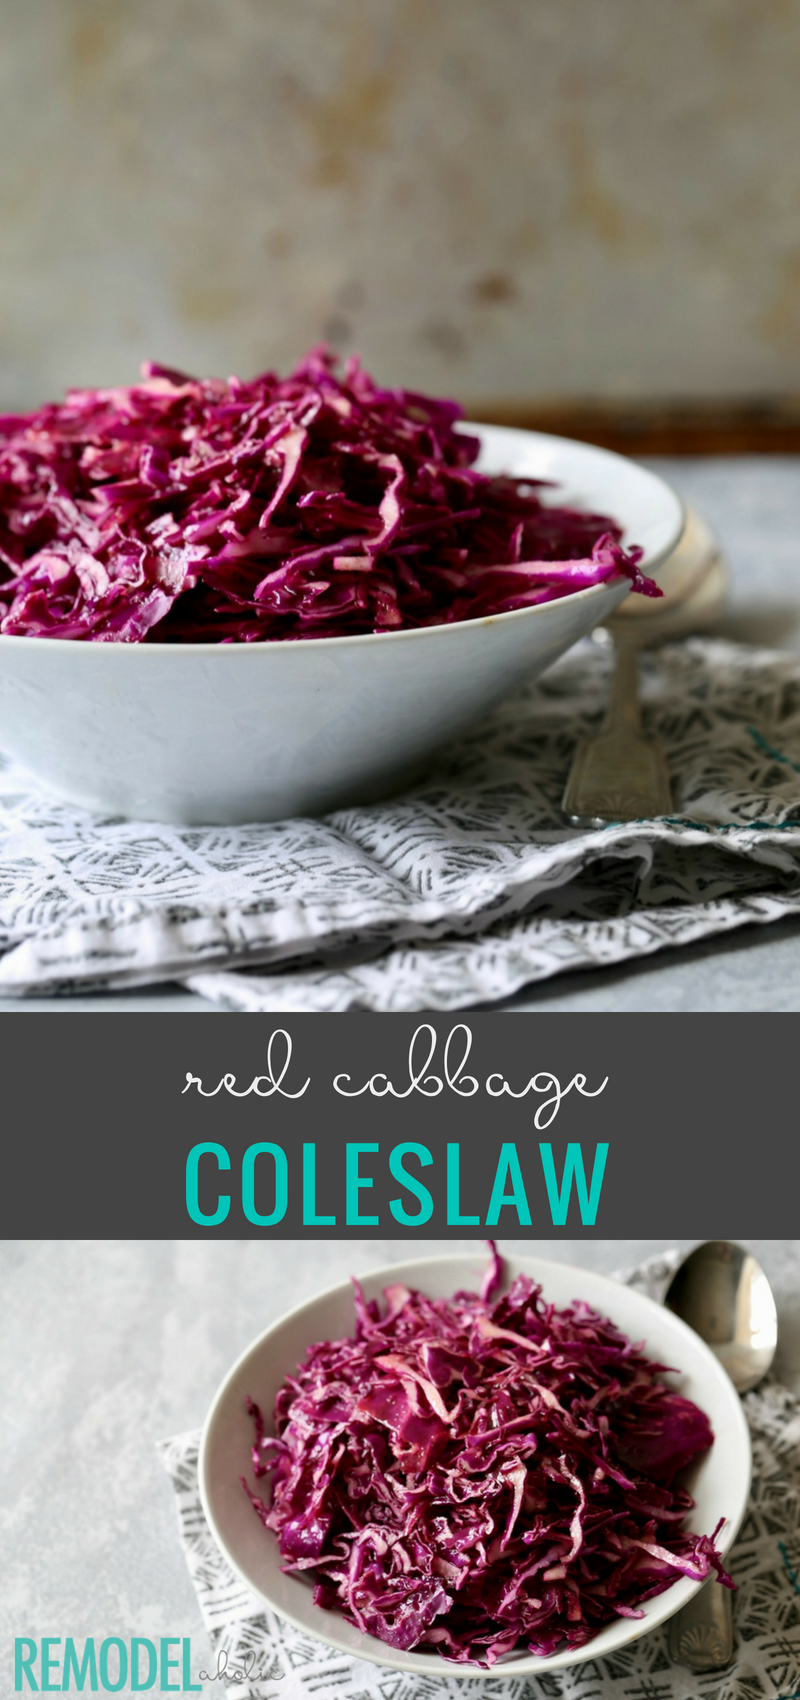 A perfect side dish to add some veggies! Try this Red Cabbage Coleslaw recipe at remodelaholic.com #recipes #sidedishes #coleslaw